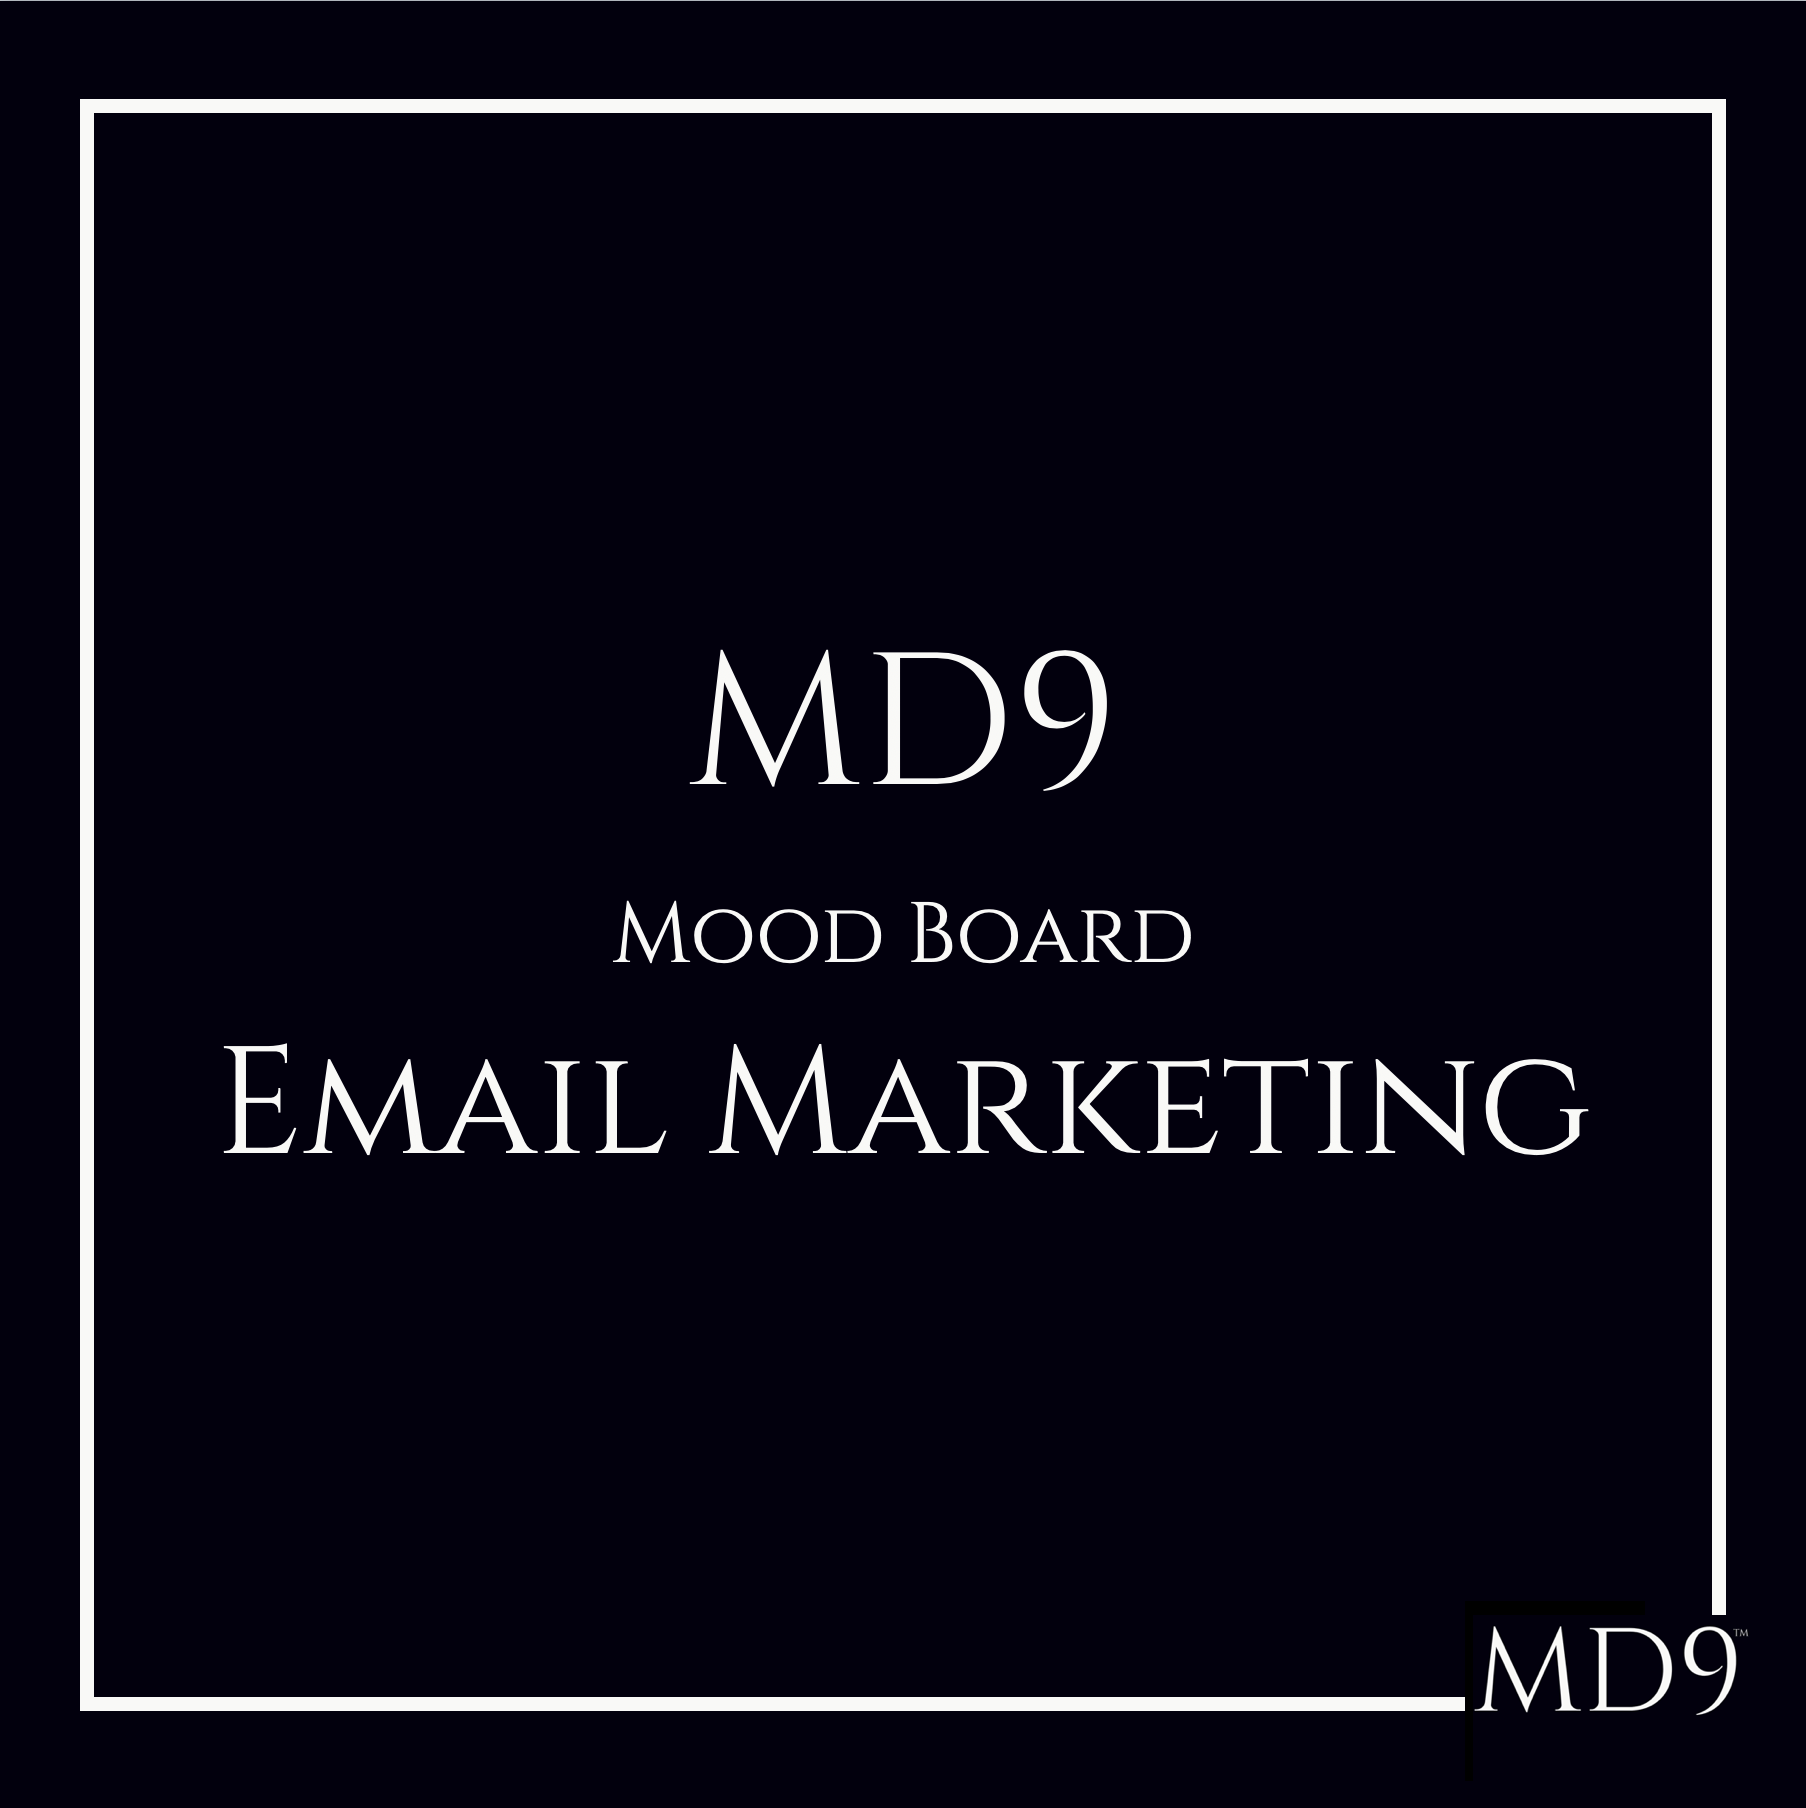 MD9's Email Marketing Mood Board